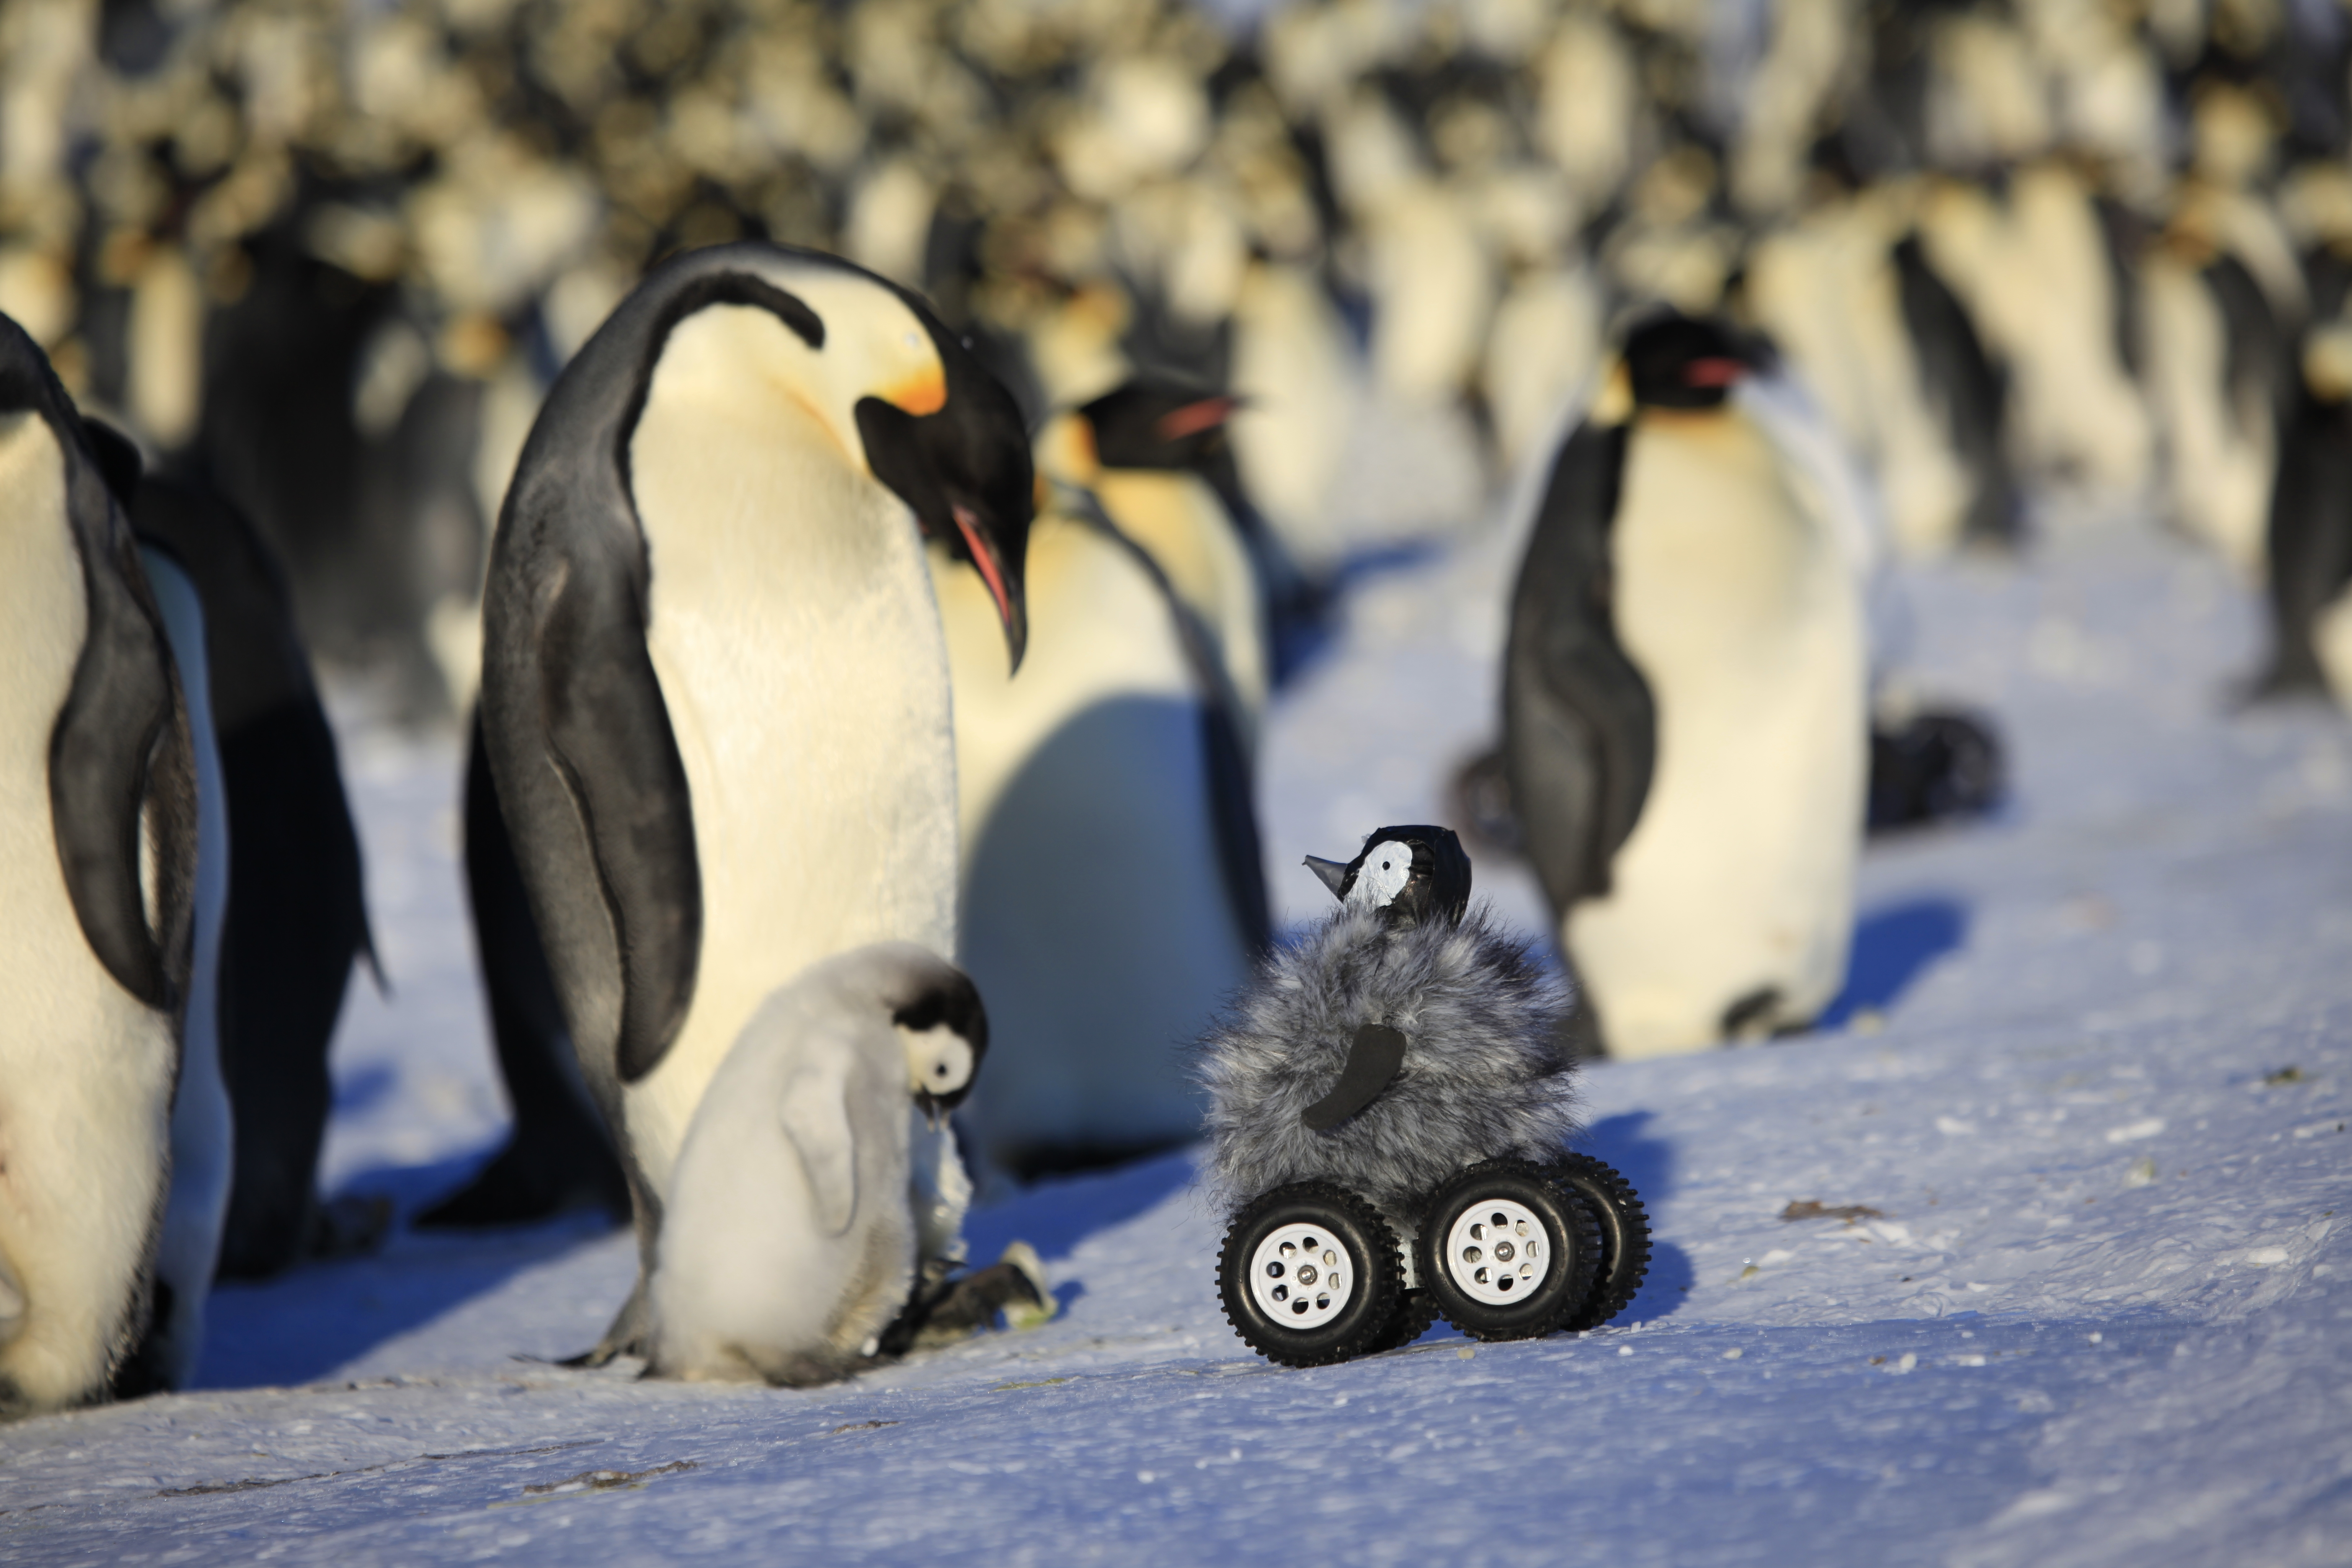 Adorable Robotic Penguin Chick Spies On Colonies Cbs News